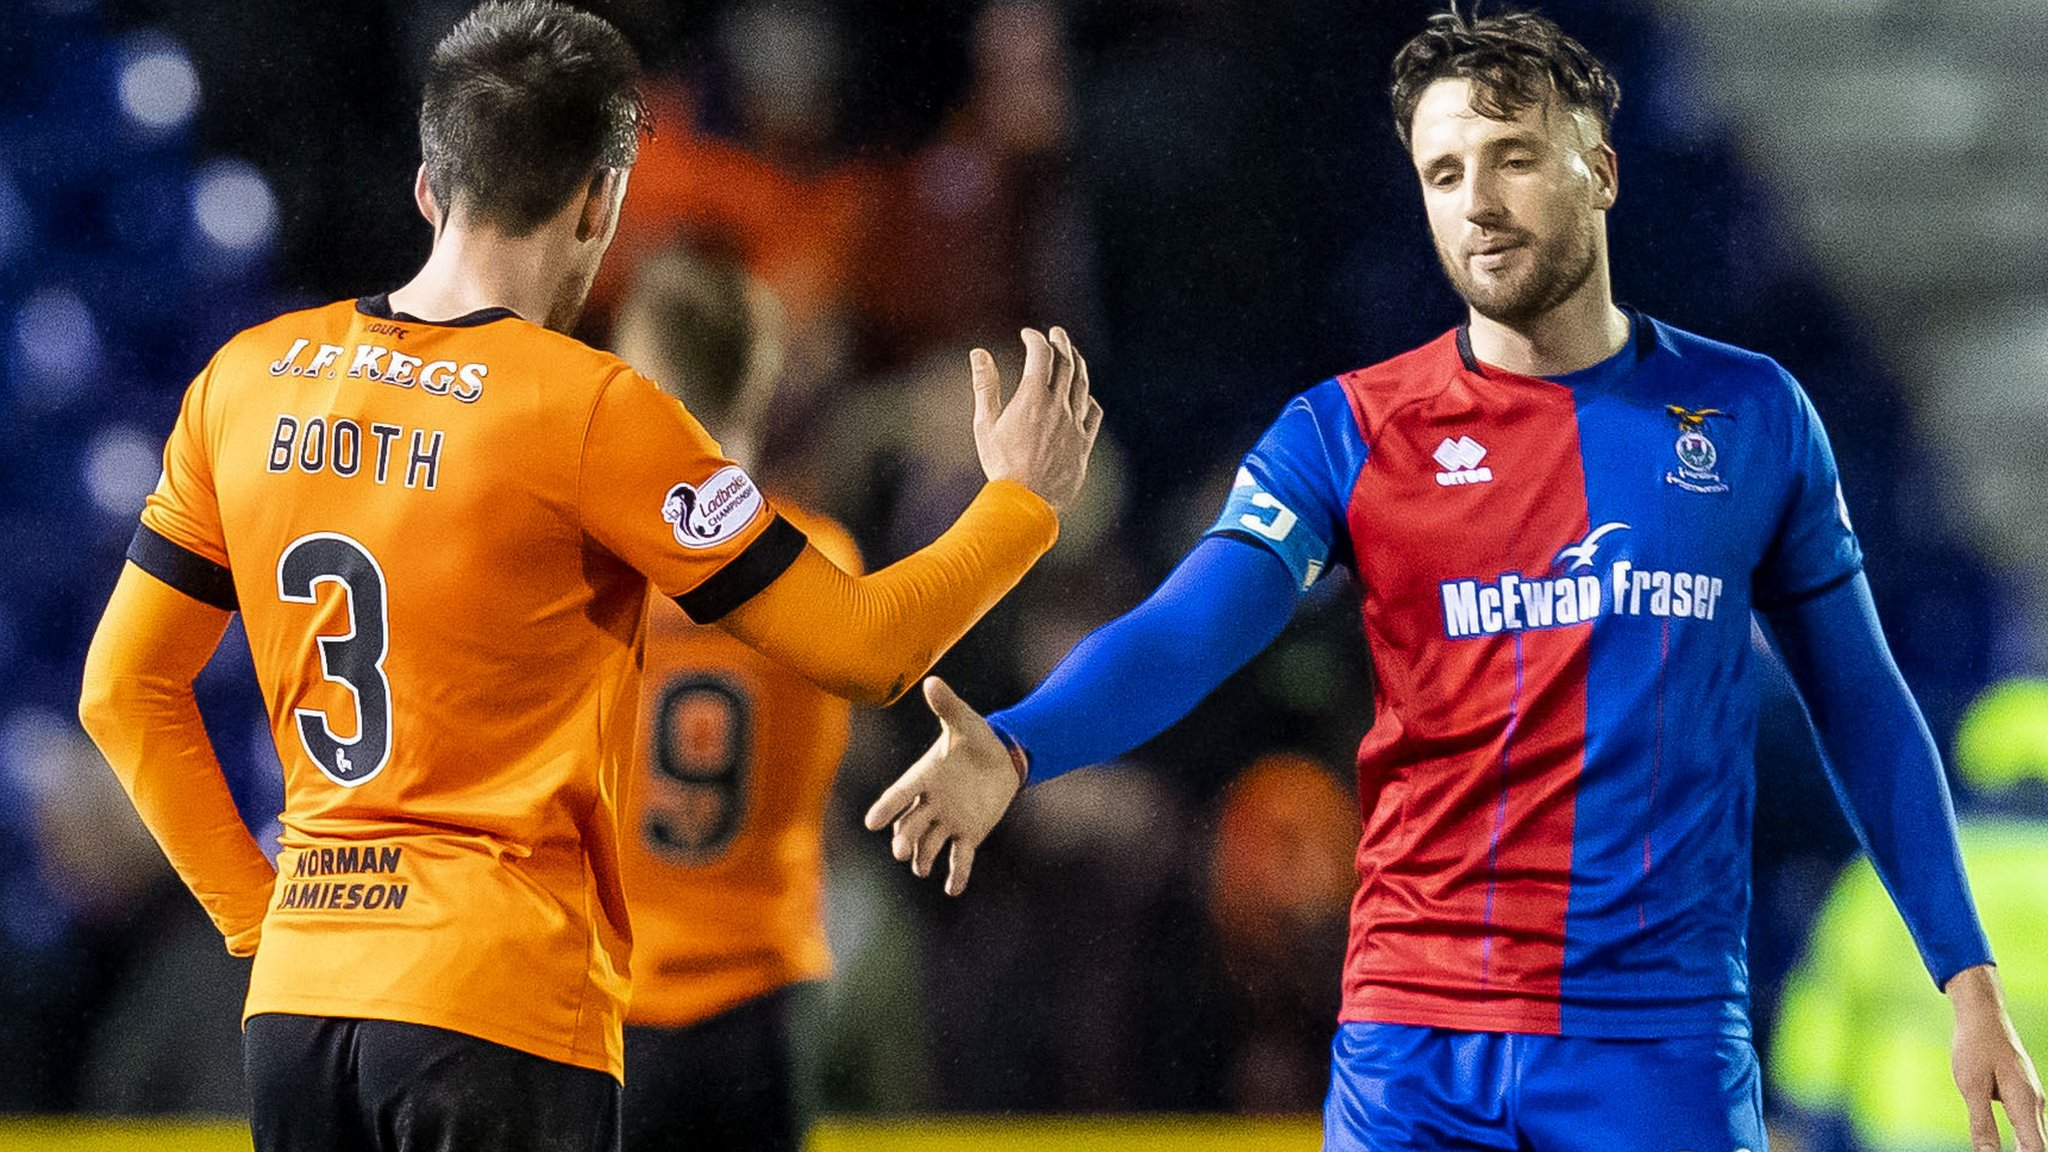 Inverness CT 1-1 Dundee United